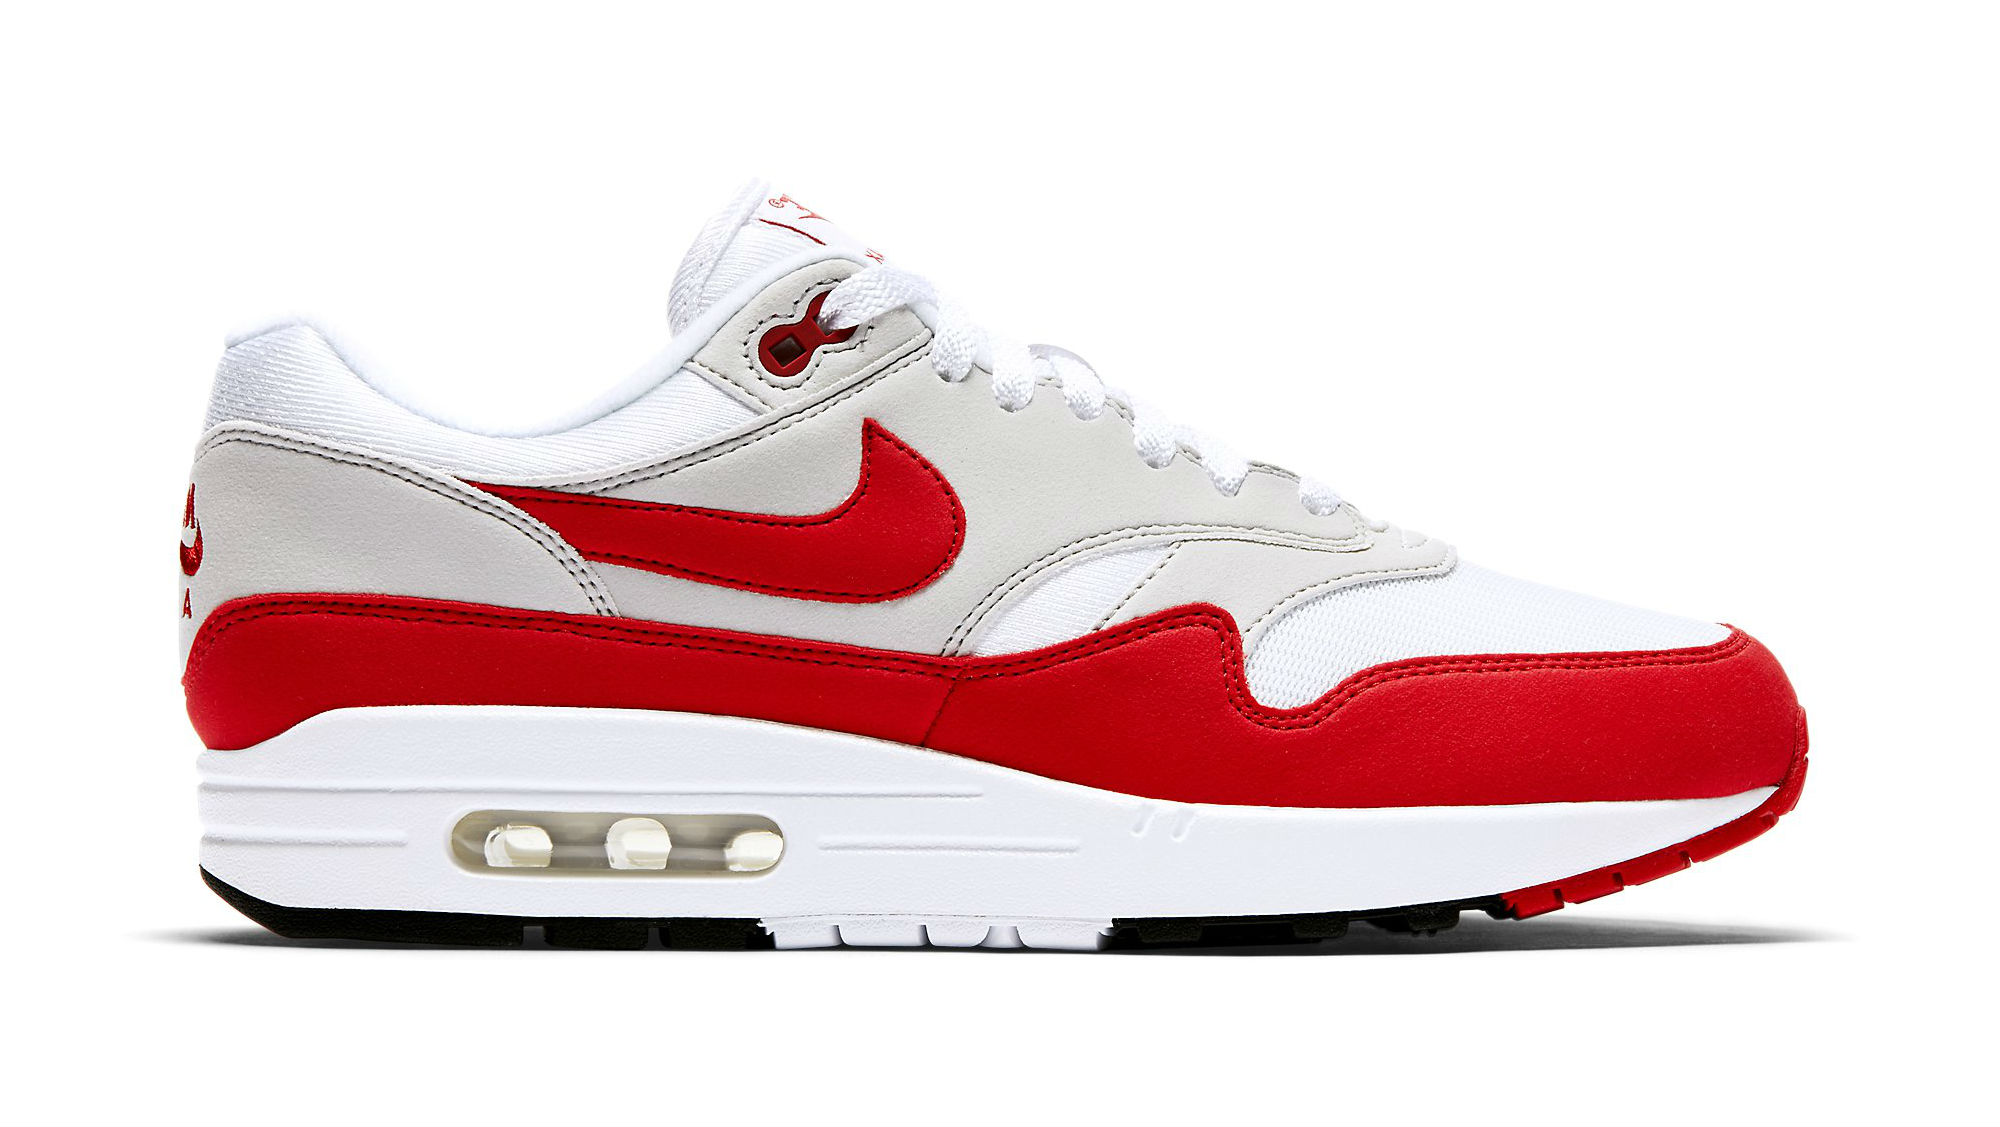 Nike Air Max 1 White/University Red-Neutral Grey-Black (Anniversary)